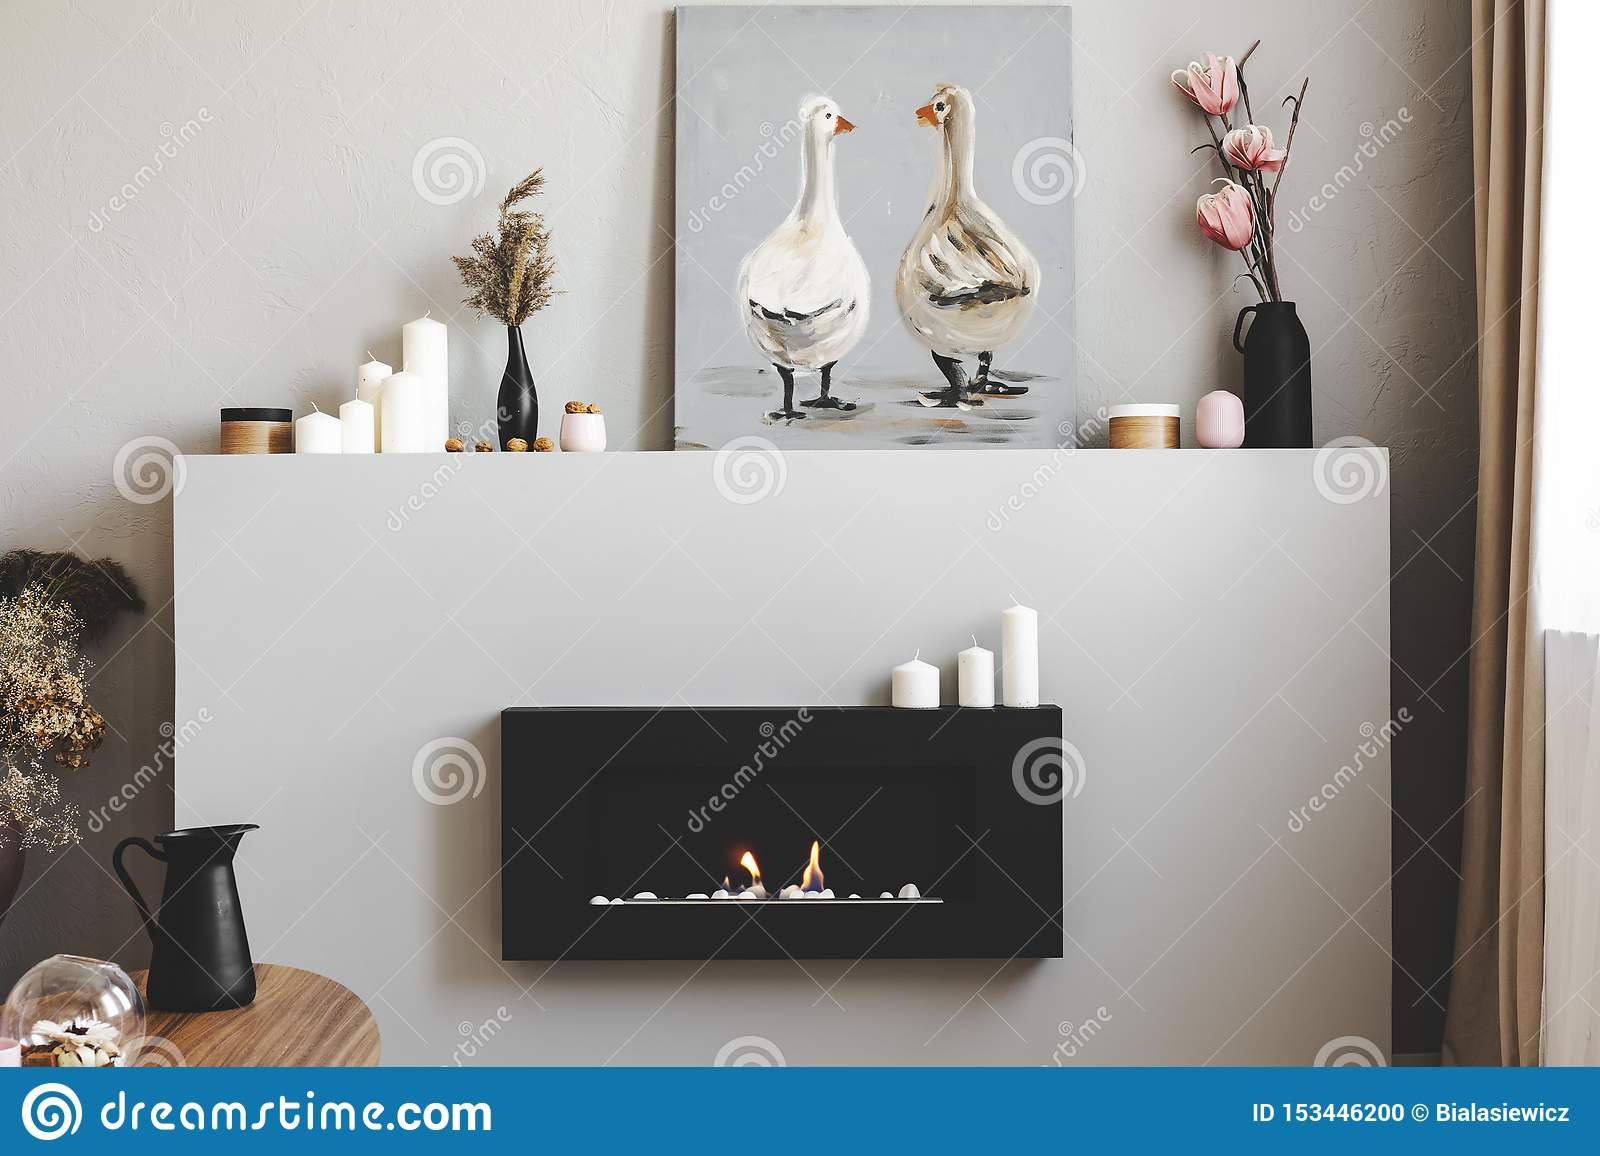 18 624 Rustic Shelf Photos Free Royalty Free Stock Photos From Dreamstime